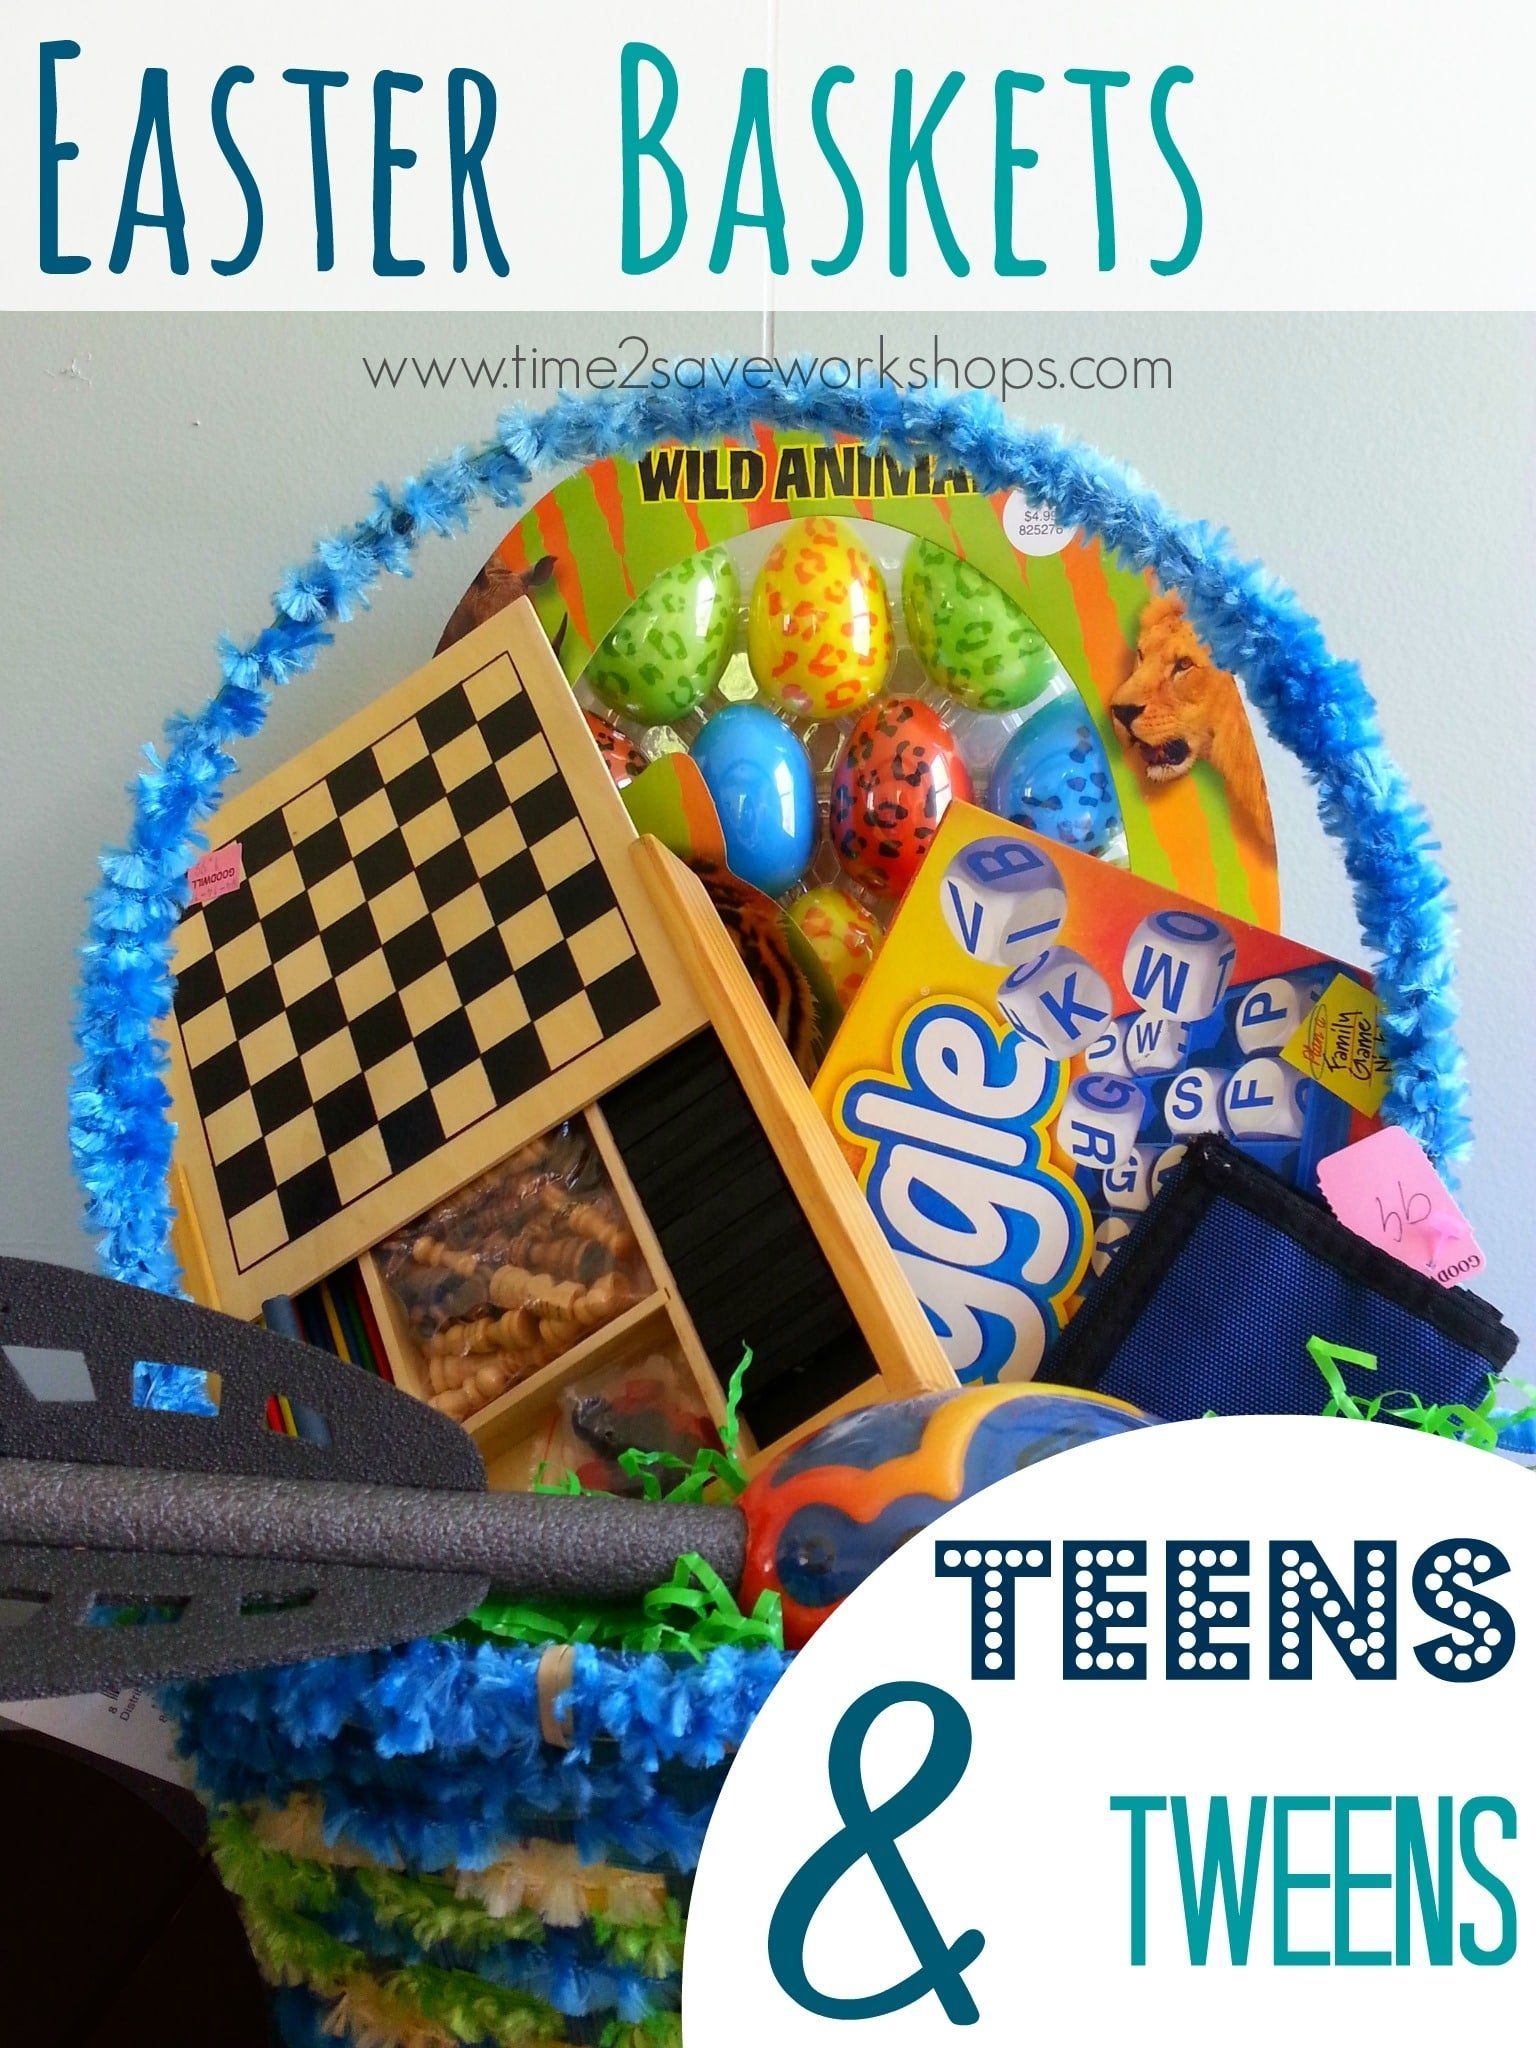 10 Most Recommended Easter Basket Ideas For Tweens easter baskets for teens tweens 6 frugal ideas kasey trenum 2020